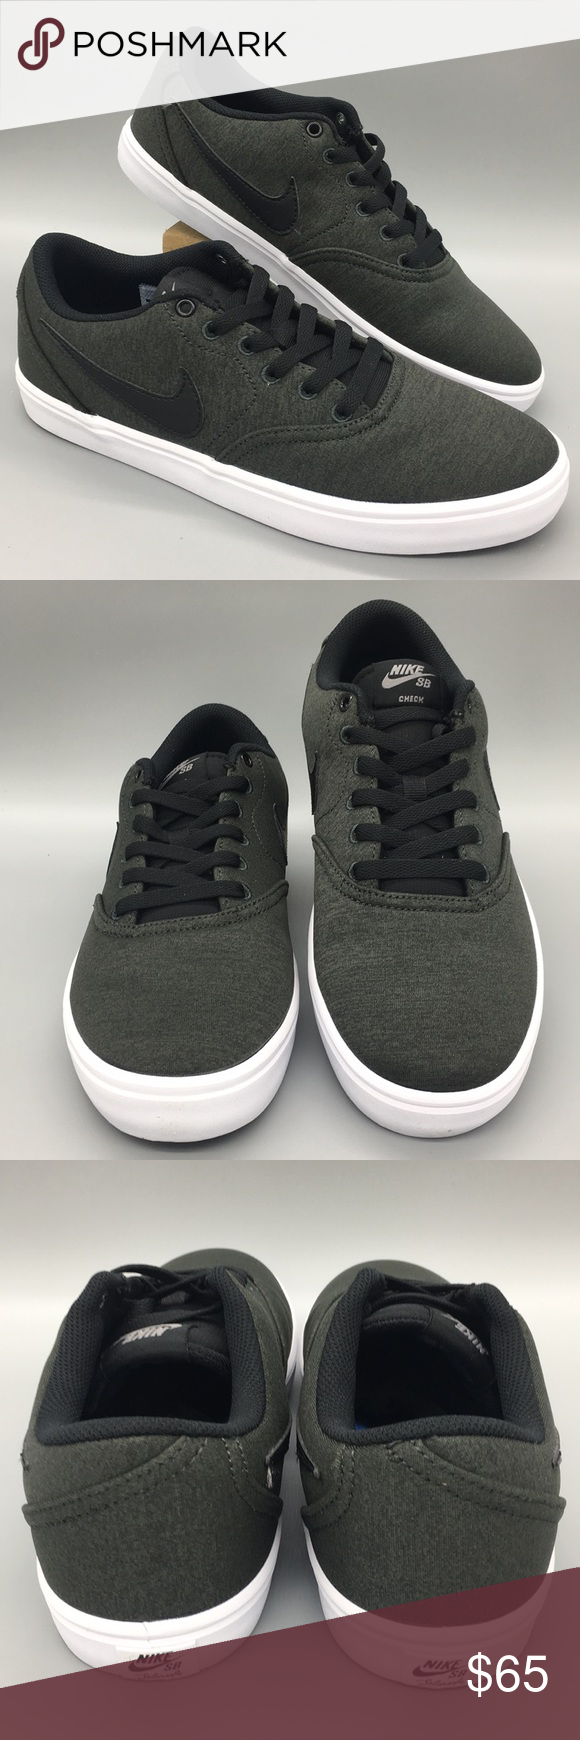 Nike Sb Check Solar Cnvs Prm Anthracite Black Whit In 2020 Casual Athletic Shoes Red Sneakers Casual Sneakers